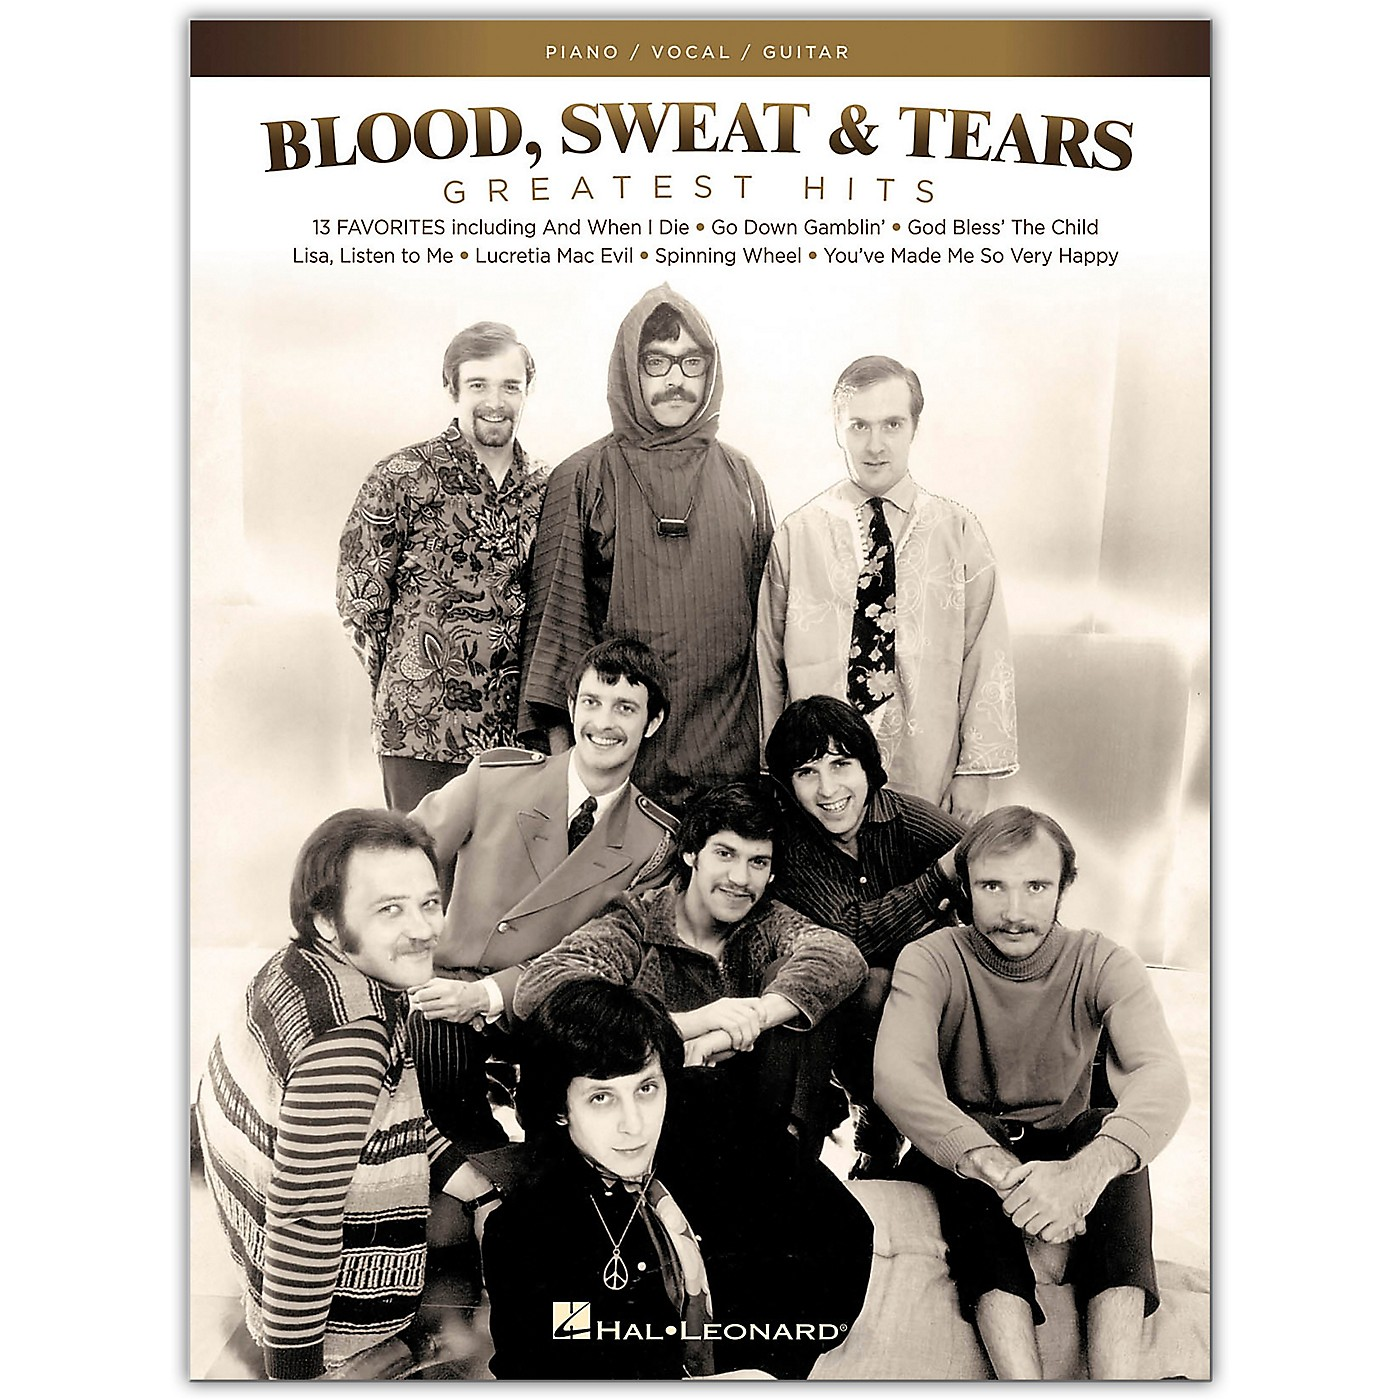 Hal Leonard Blood, Sweat & Tears - Greatest Hits for Piano/Vocal/Guitar thumbnail